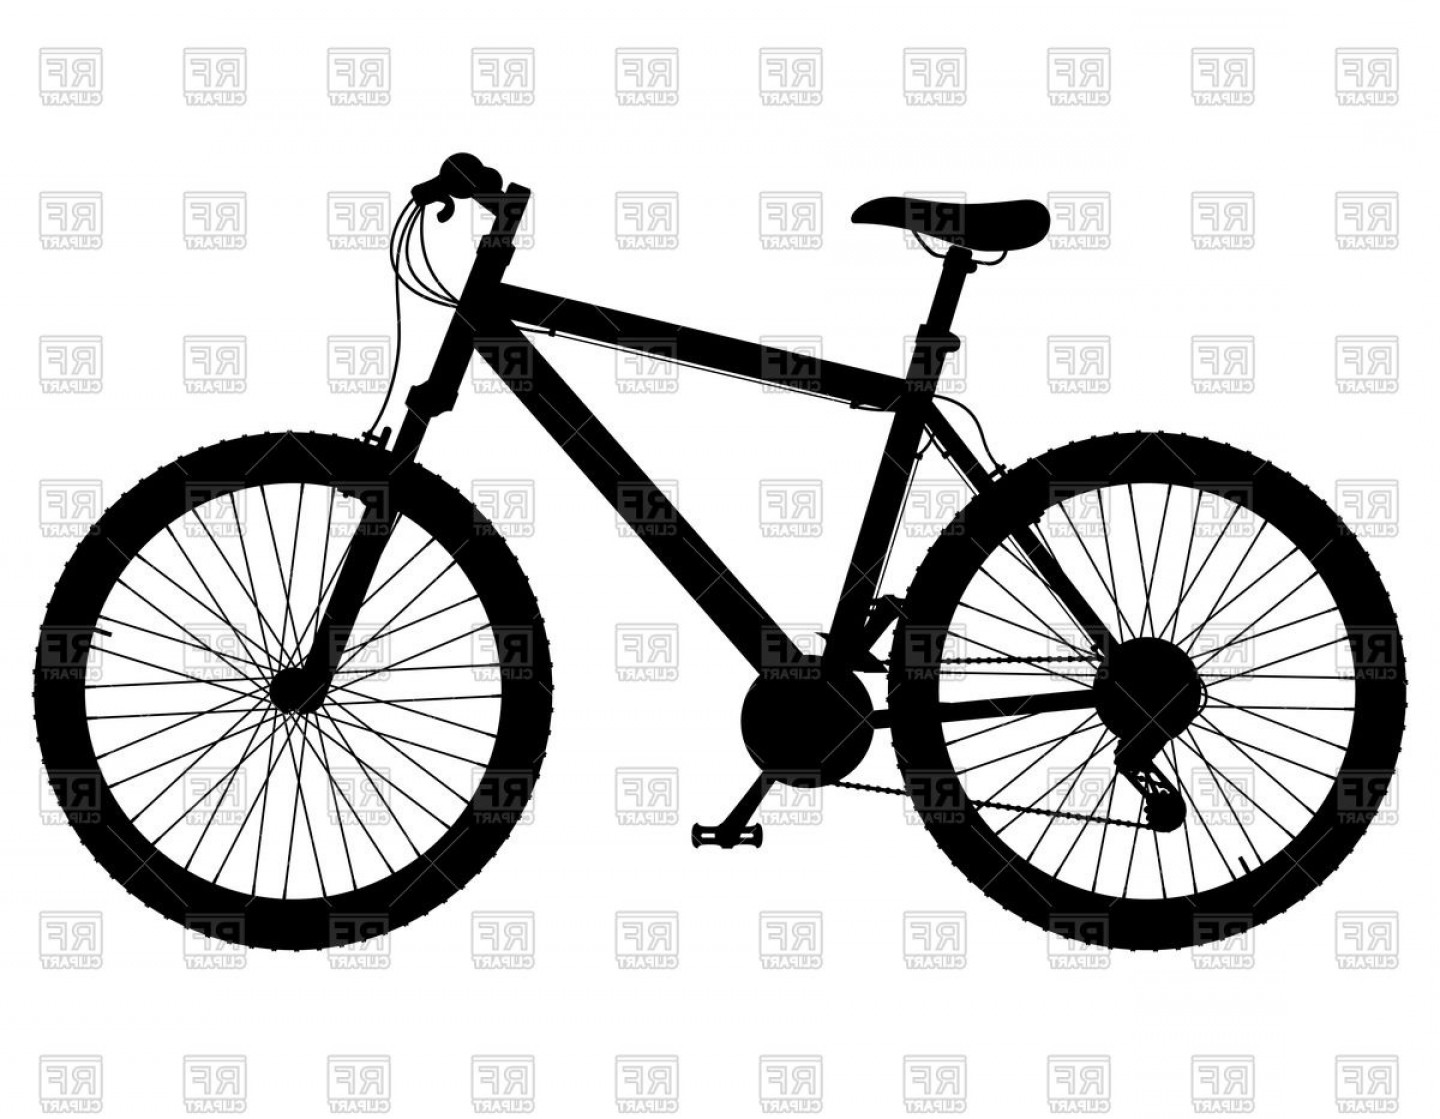 Mountain Bike Silhouette Vector: Silhouette Of Mountain Bike With Gear Shifting Vector Clipart